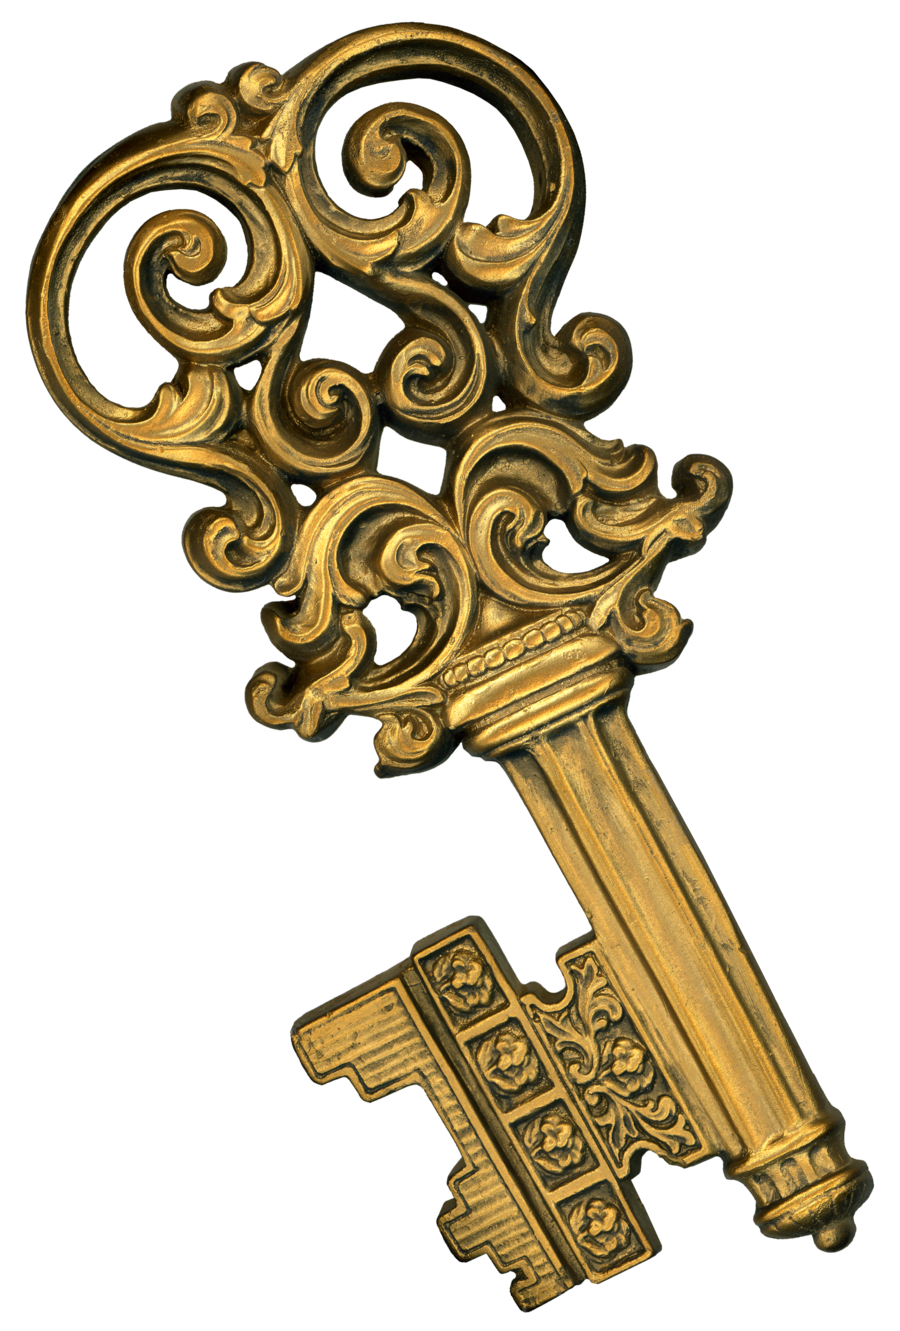 Key clipart pirate key, Key pirate key Transparent FREE for.